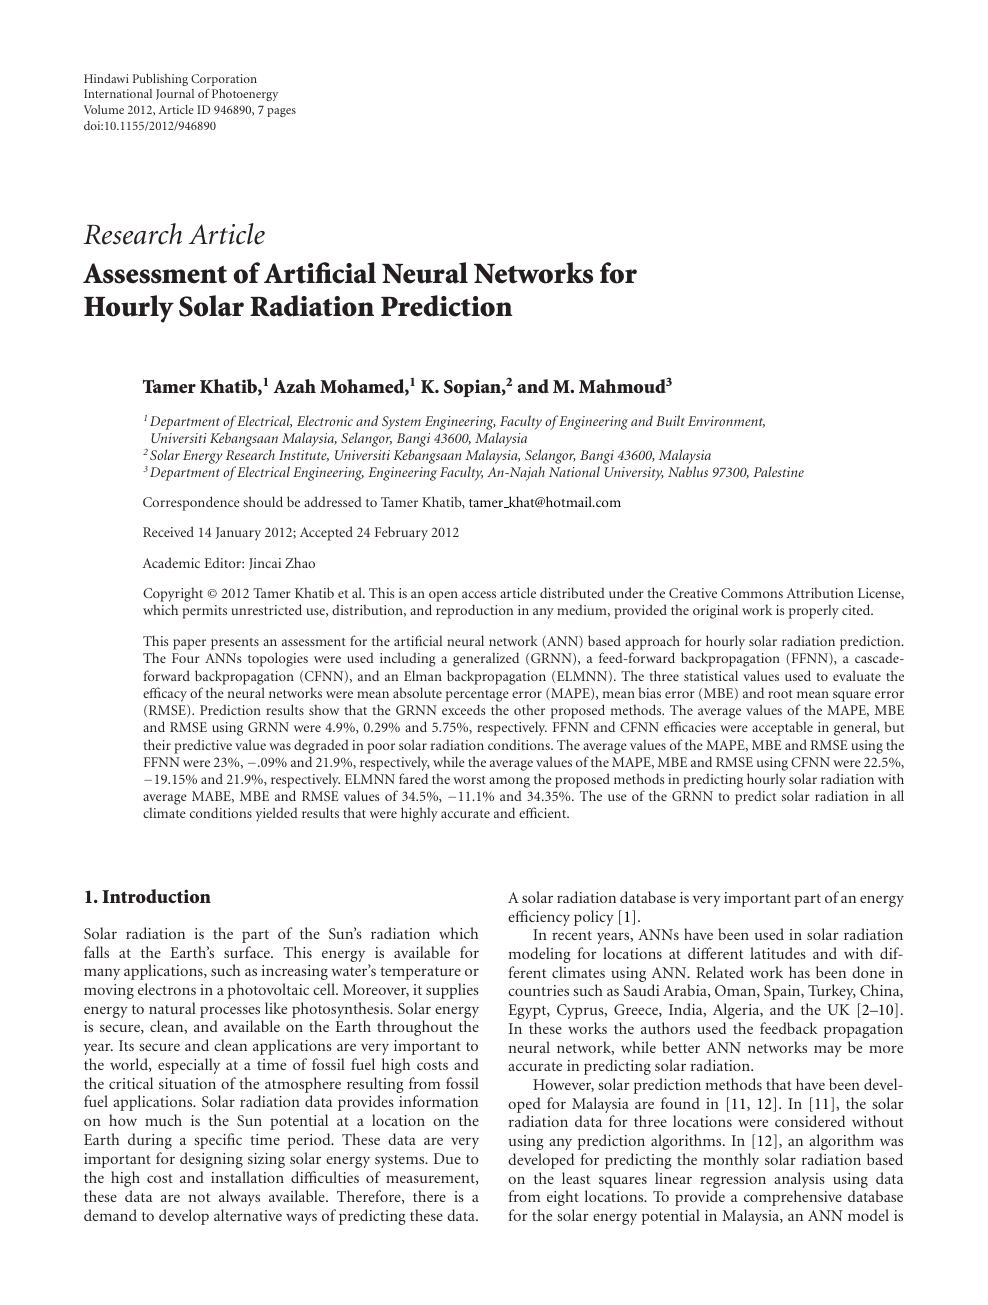 Assessment Of Artificial Neural Networks For Hourly Solar Radiation Prediction Topic Of Research Paper In Electrical Engineering Electronic Engineering Information Engineering Download Scholarly Article Pdf And Read For Free On Cyberleninka